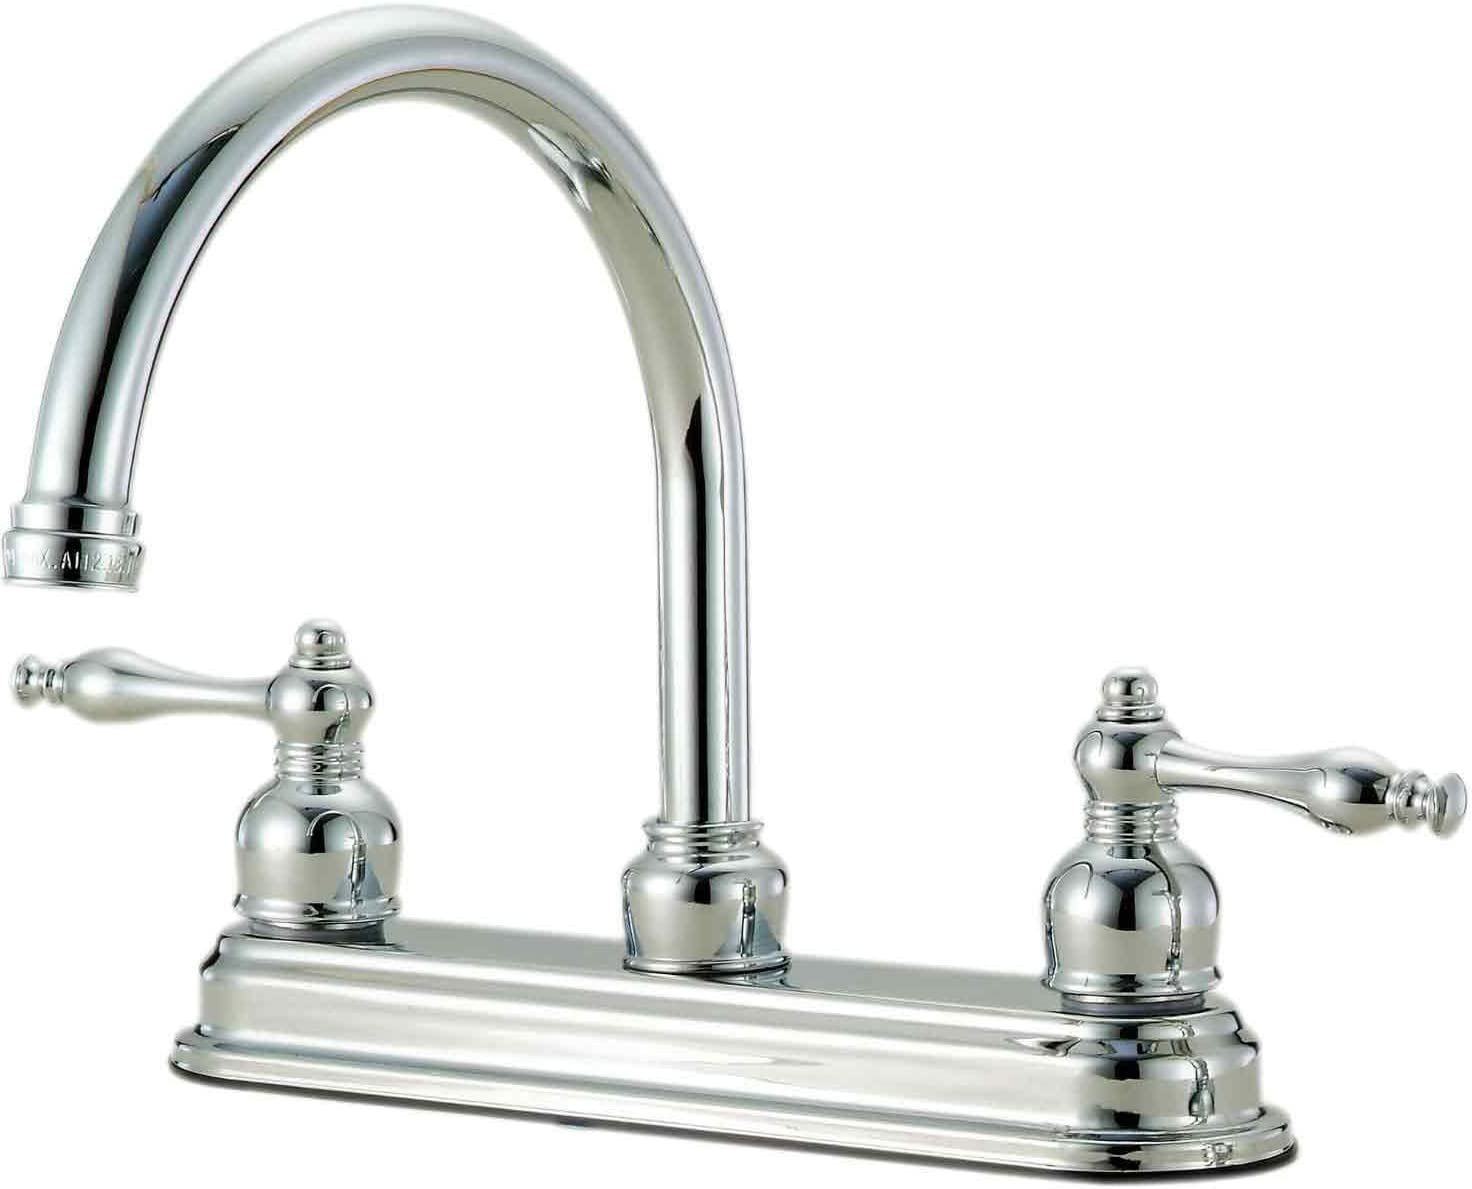 Hardware House 12-4324 Two-handle Kitchen Faucet Chrome